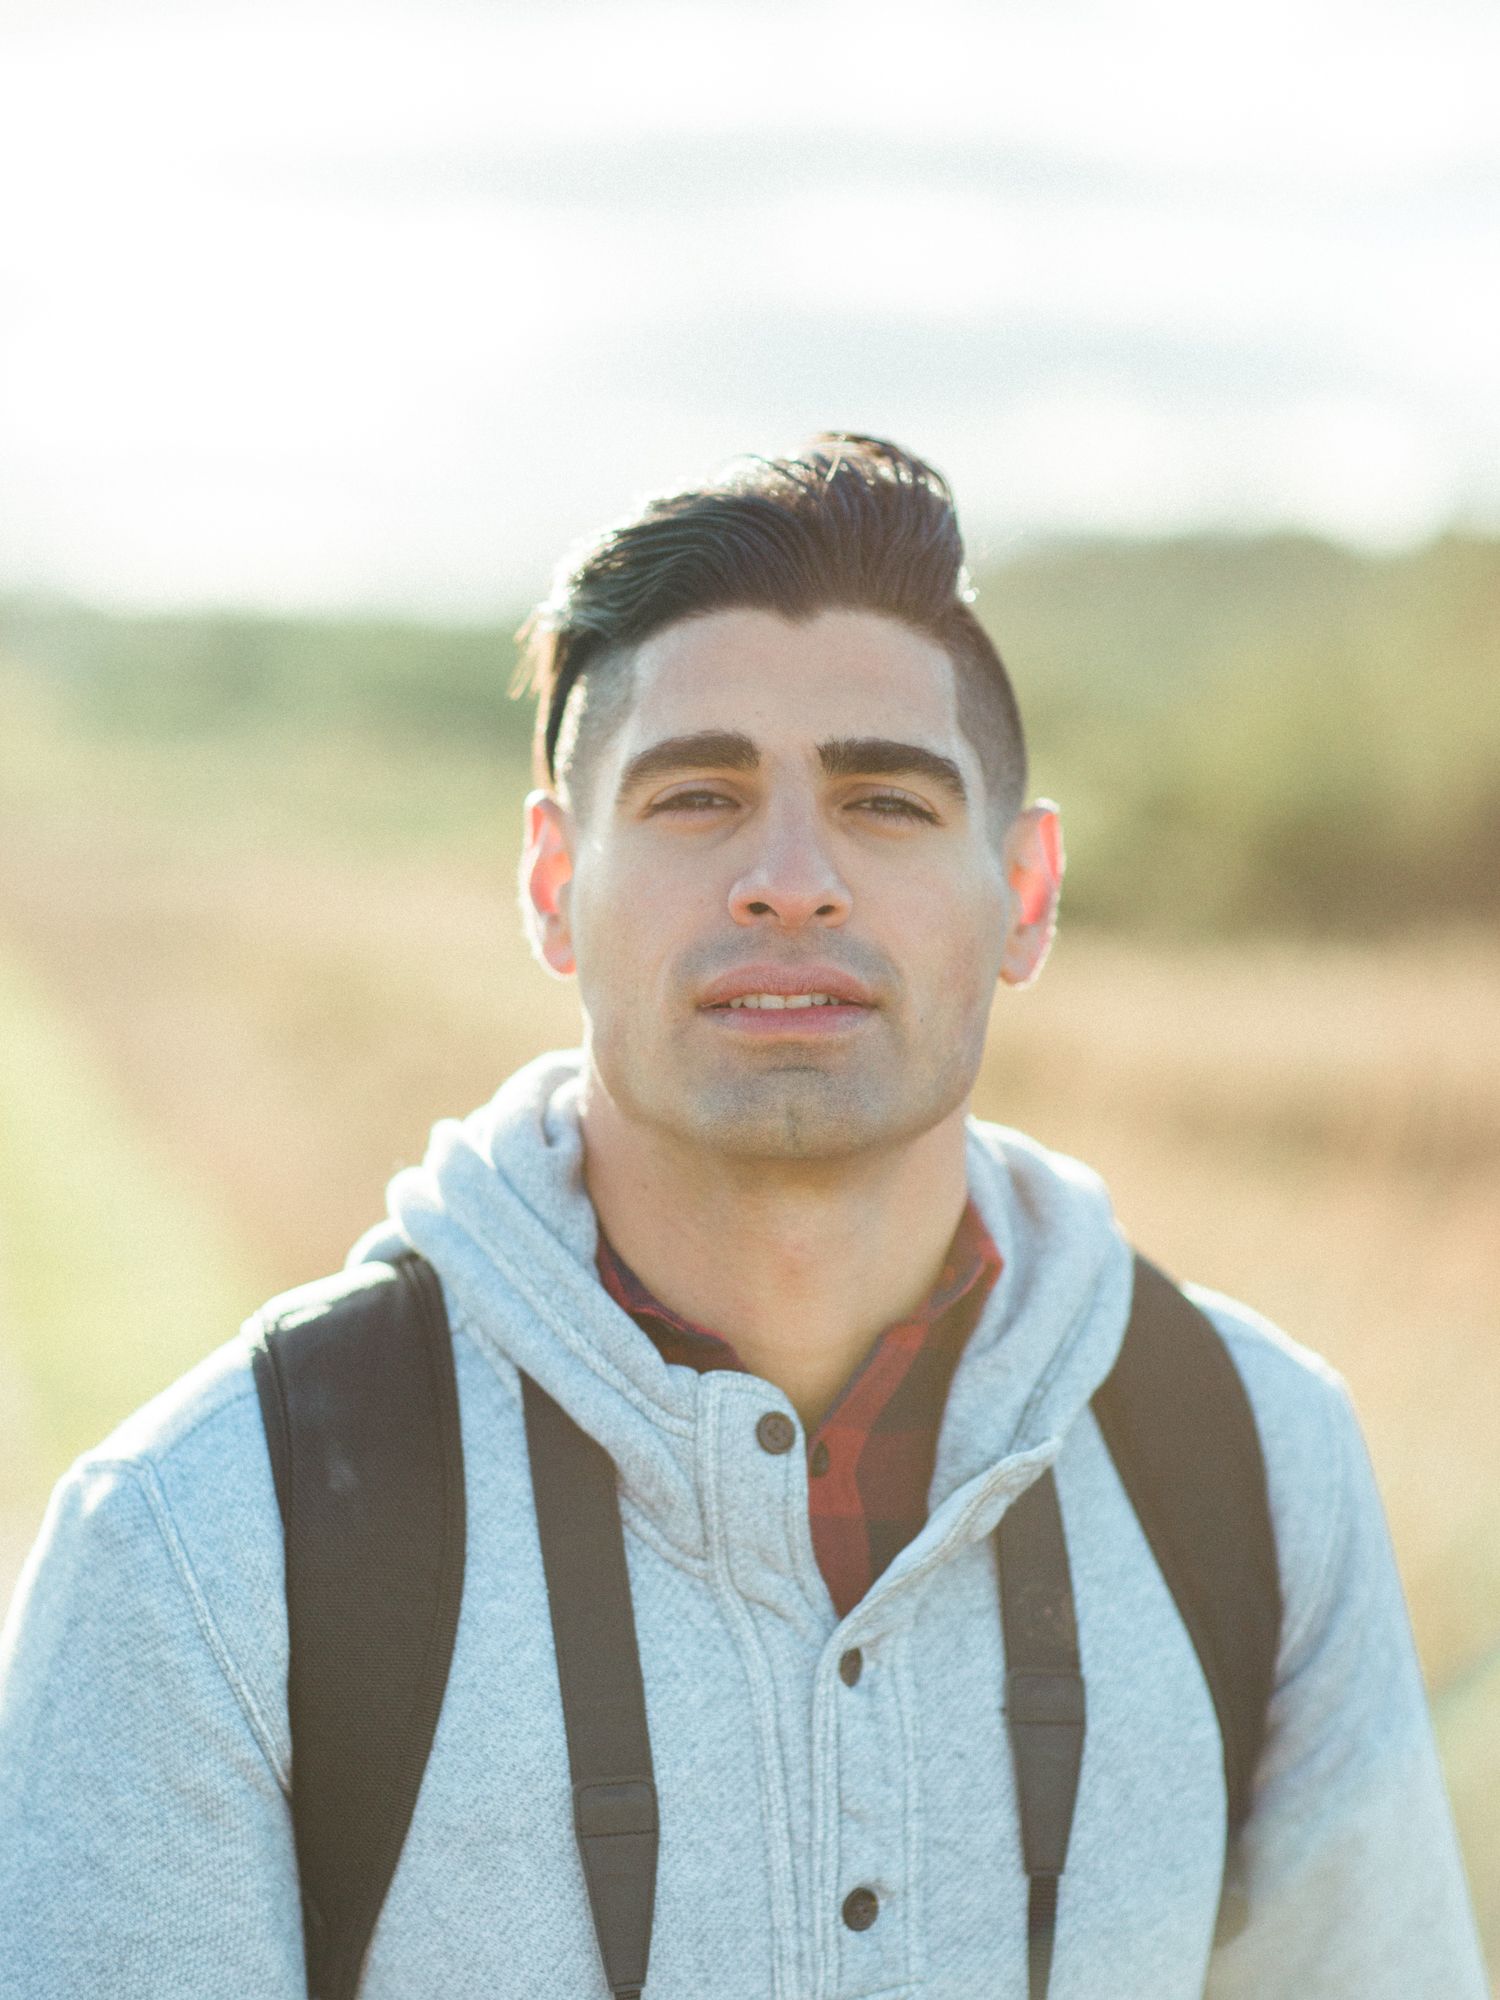 This weekend adventure was such spent with incredible company, and I'm so excited to share the photos I captured of Amir throughout our weekend. I absolutely love portraits, and this photo had me blushing as soon as I captured it. The light spilling in was like something from a fairytale!